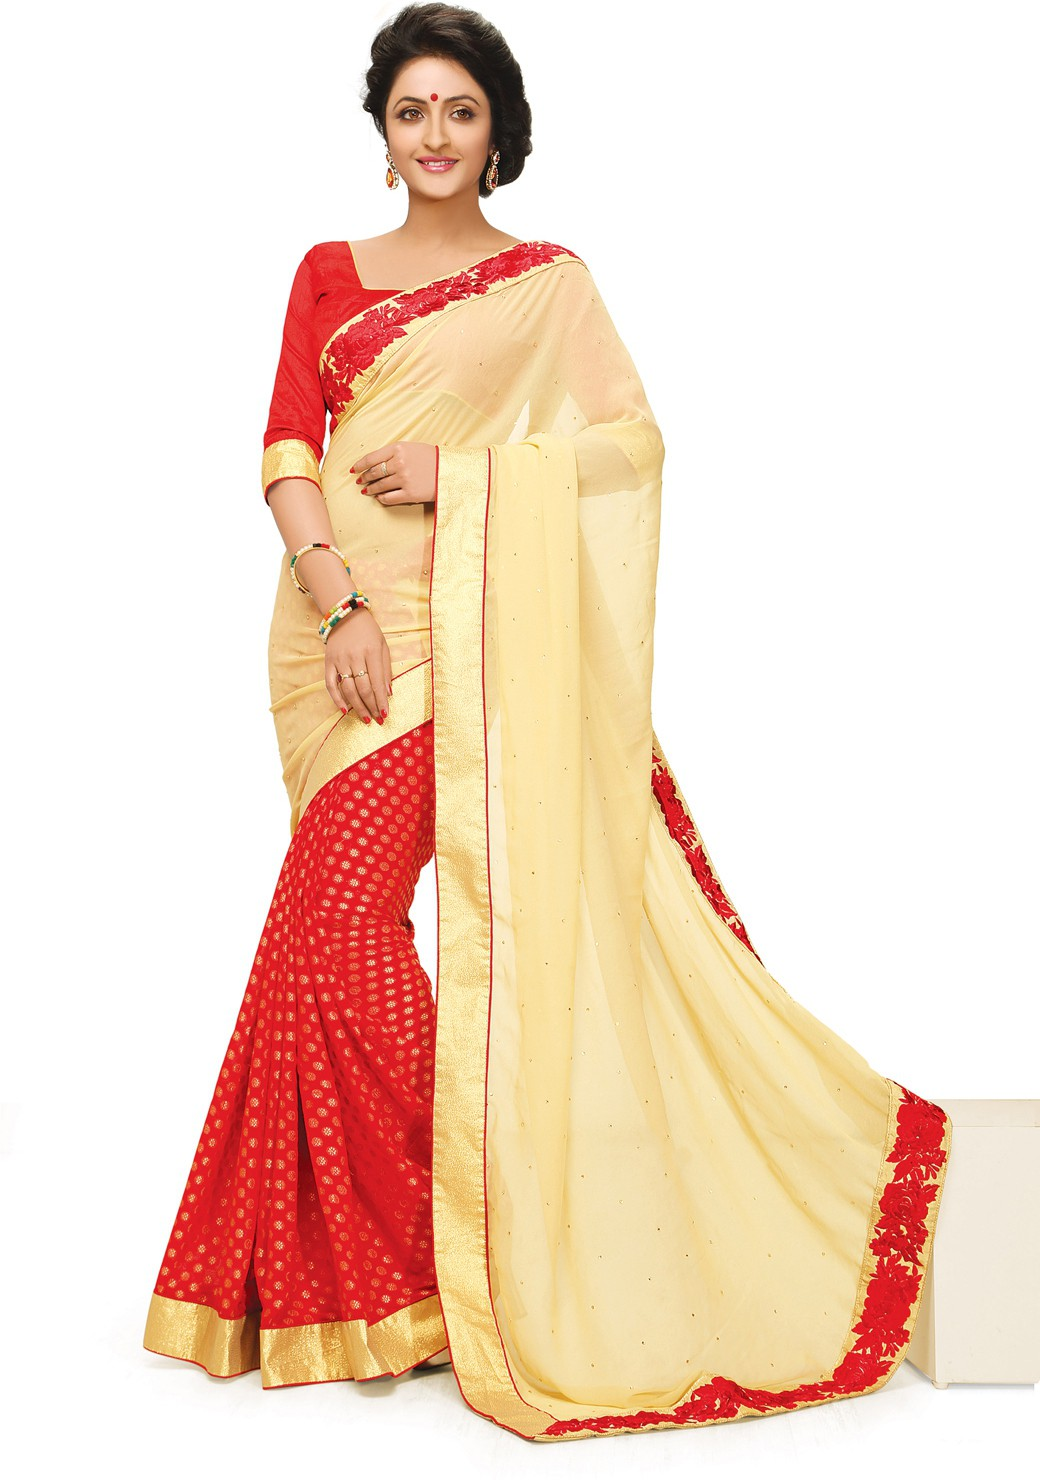 Indianbeauty Self Design, Embroidered Fashion Jacquard, Georgette Sari(Beige, Red)